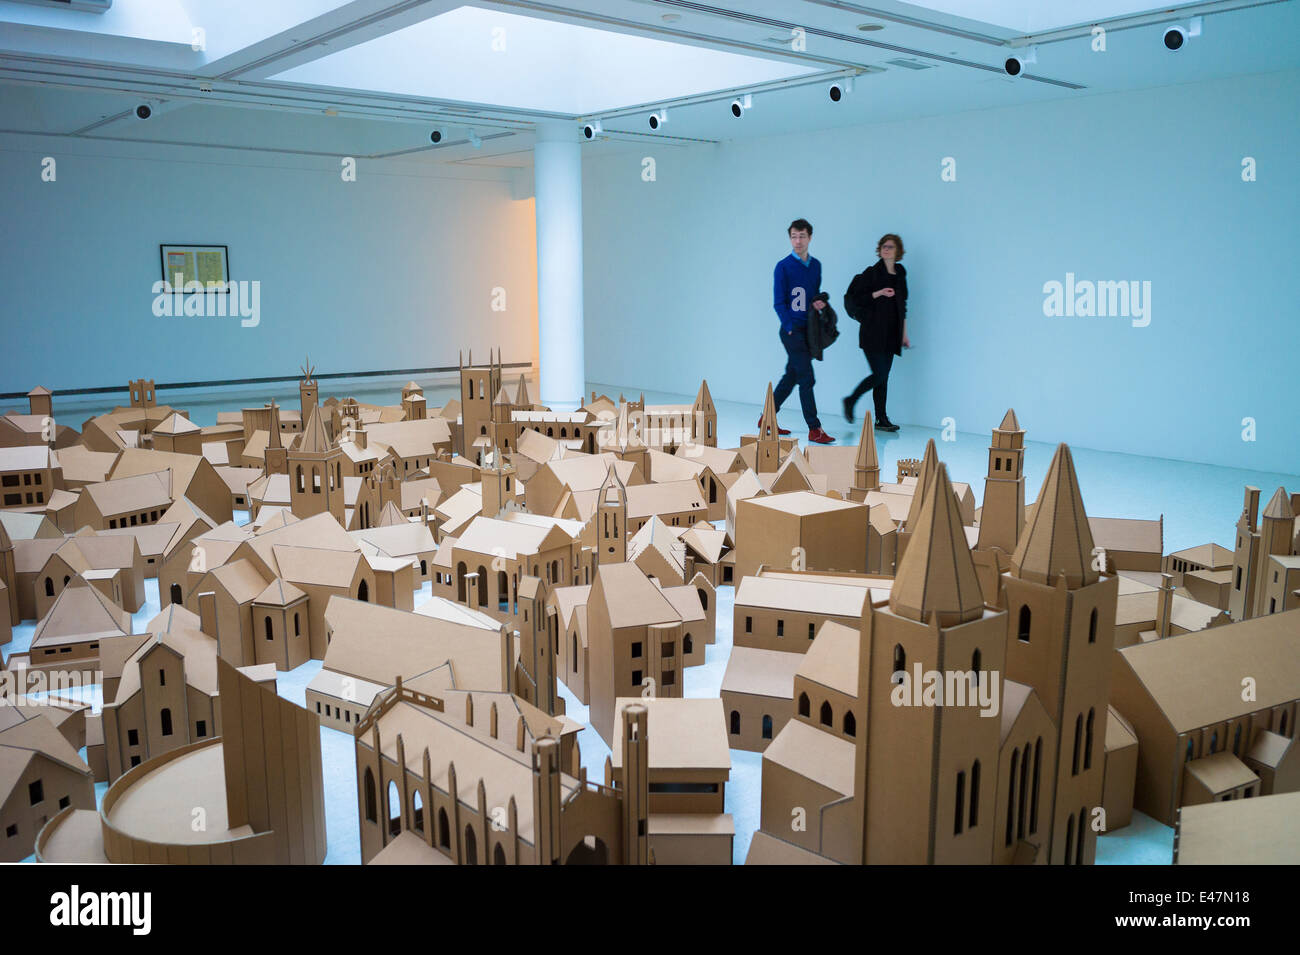 Tourists view 'Generation - 286 Places of Worship in Edinburgh' by Nathan Coley, in Gallery of Modern Art - Stock Image